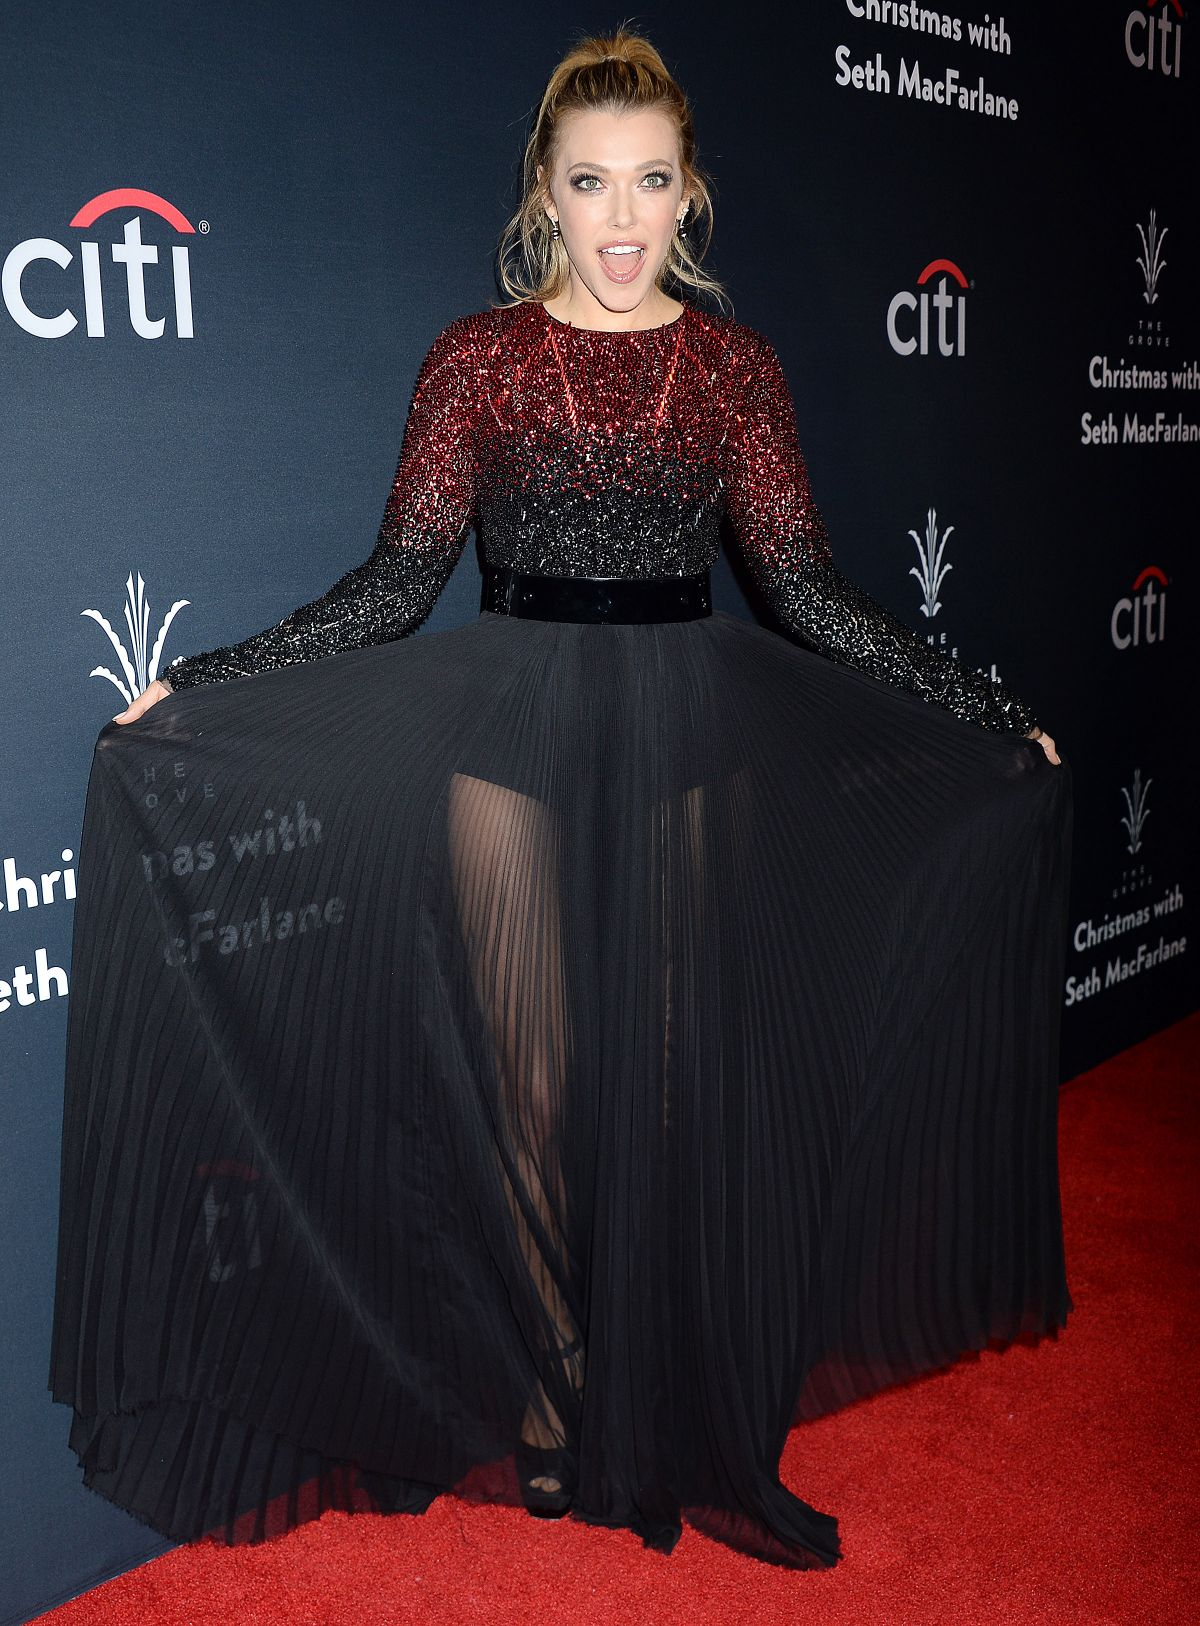 RACHEL PLATTEN at The Grove Christmas with Seth MacFarlane Presented by Citi in Los Angeles 11/13/2016